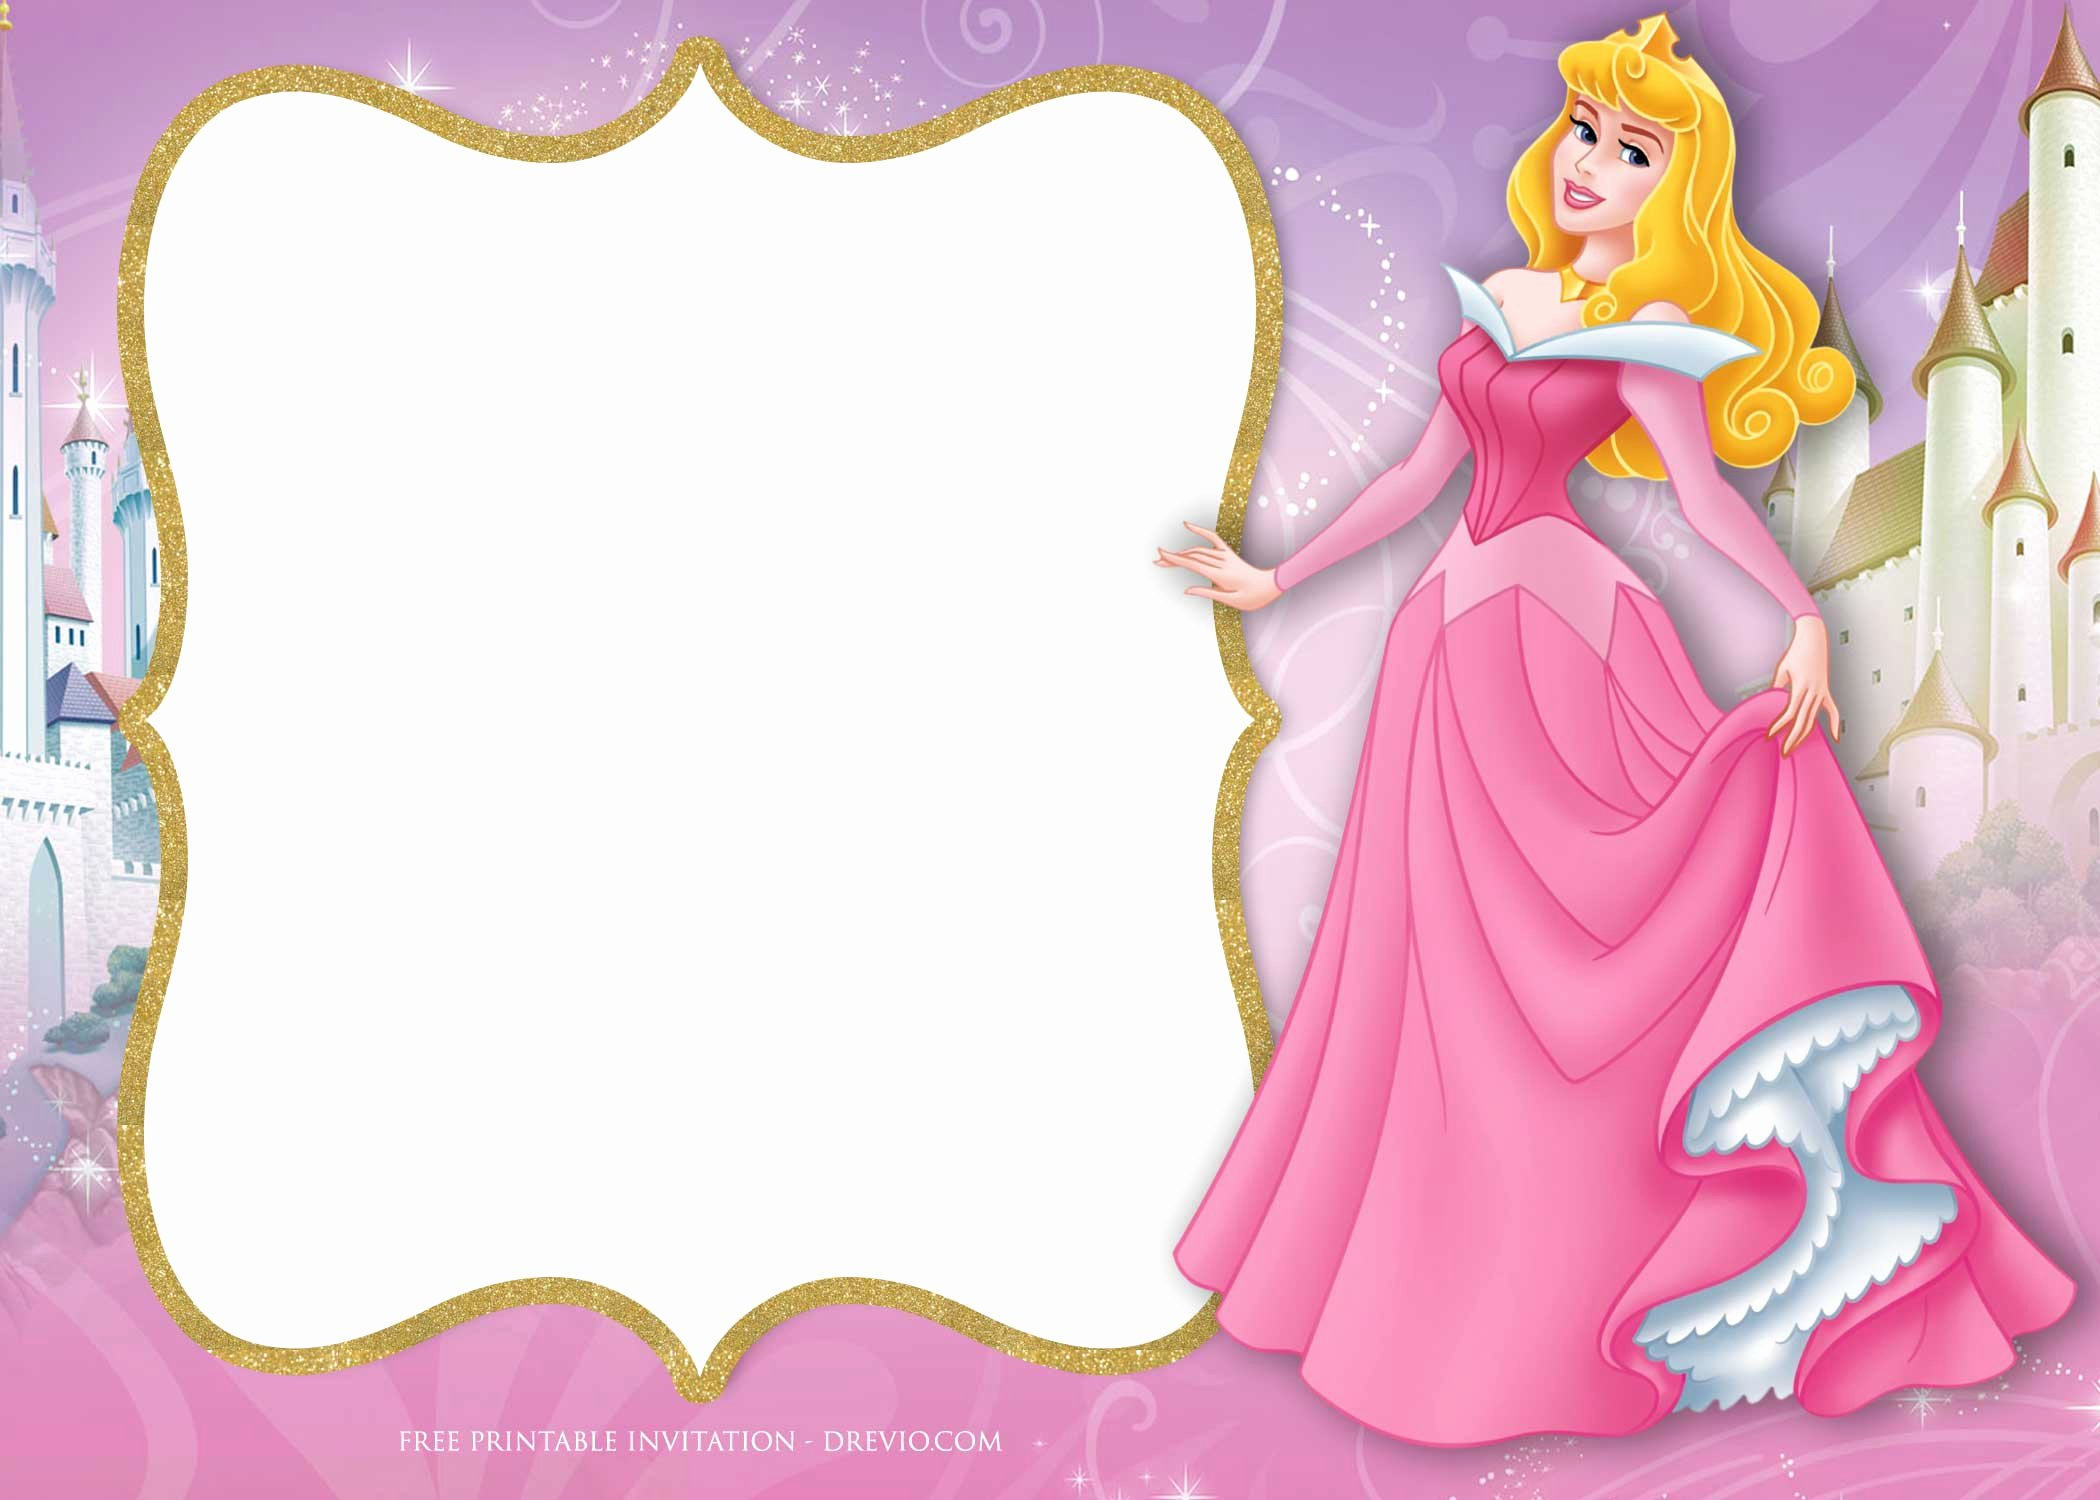 Disney Princess Invitation Templates Free Lovely Free Princess Aurora Birthday Invitation Template